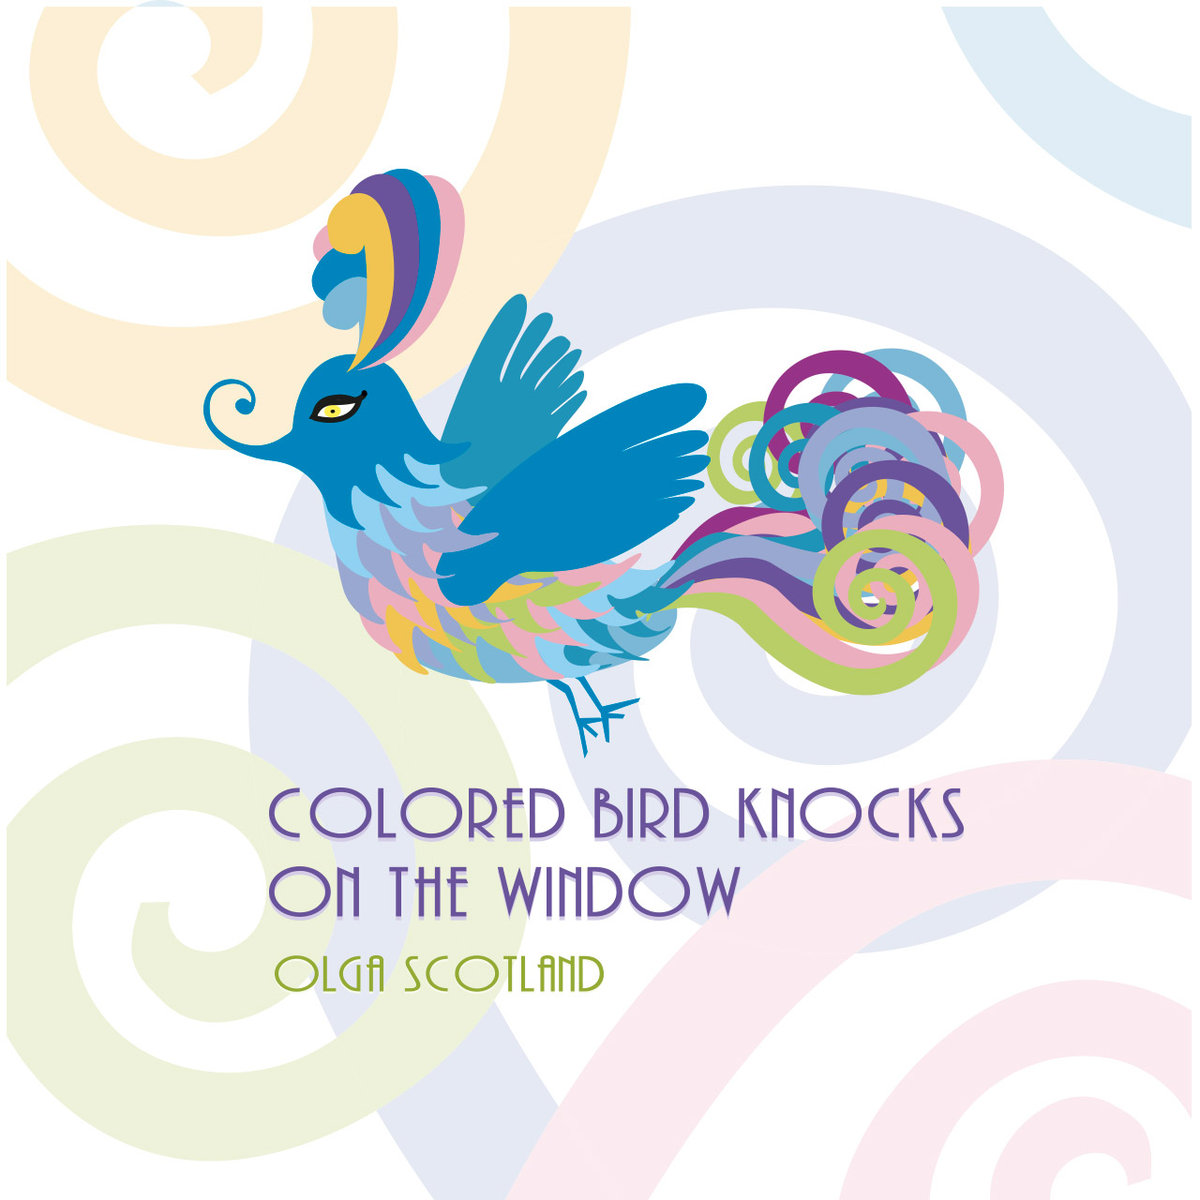 Olga Scotland - Cat The Player @ 'Colored Bird Knocks On The Window' album (soundtrack, ambient)